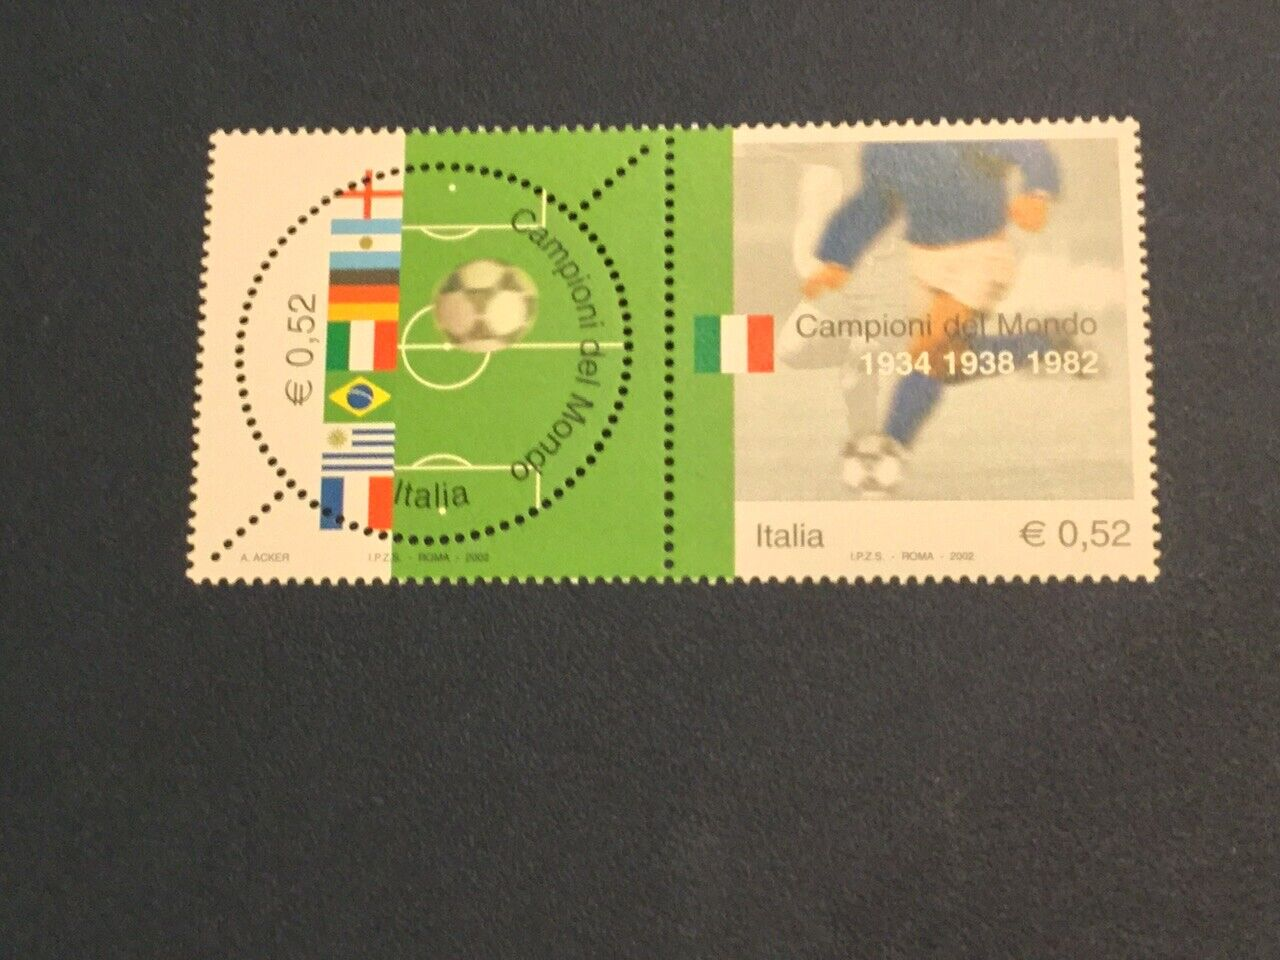 Italy Scott 2526 2002 World Cup Football World Champions Soccer MNH - $2.25